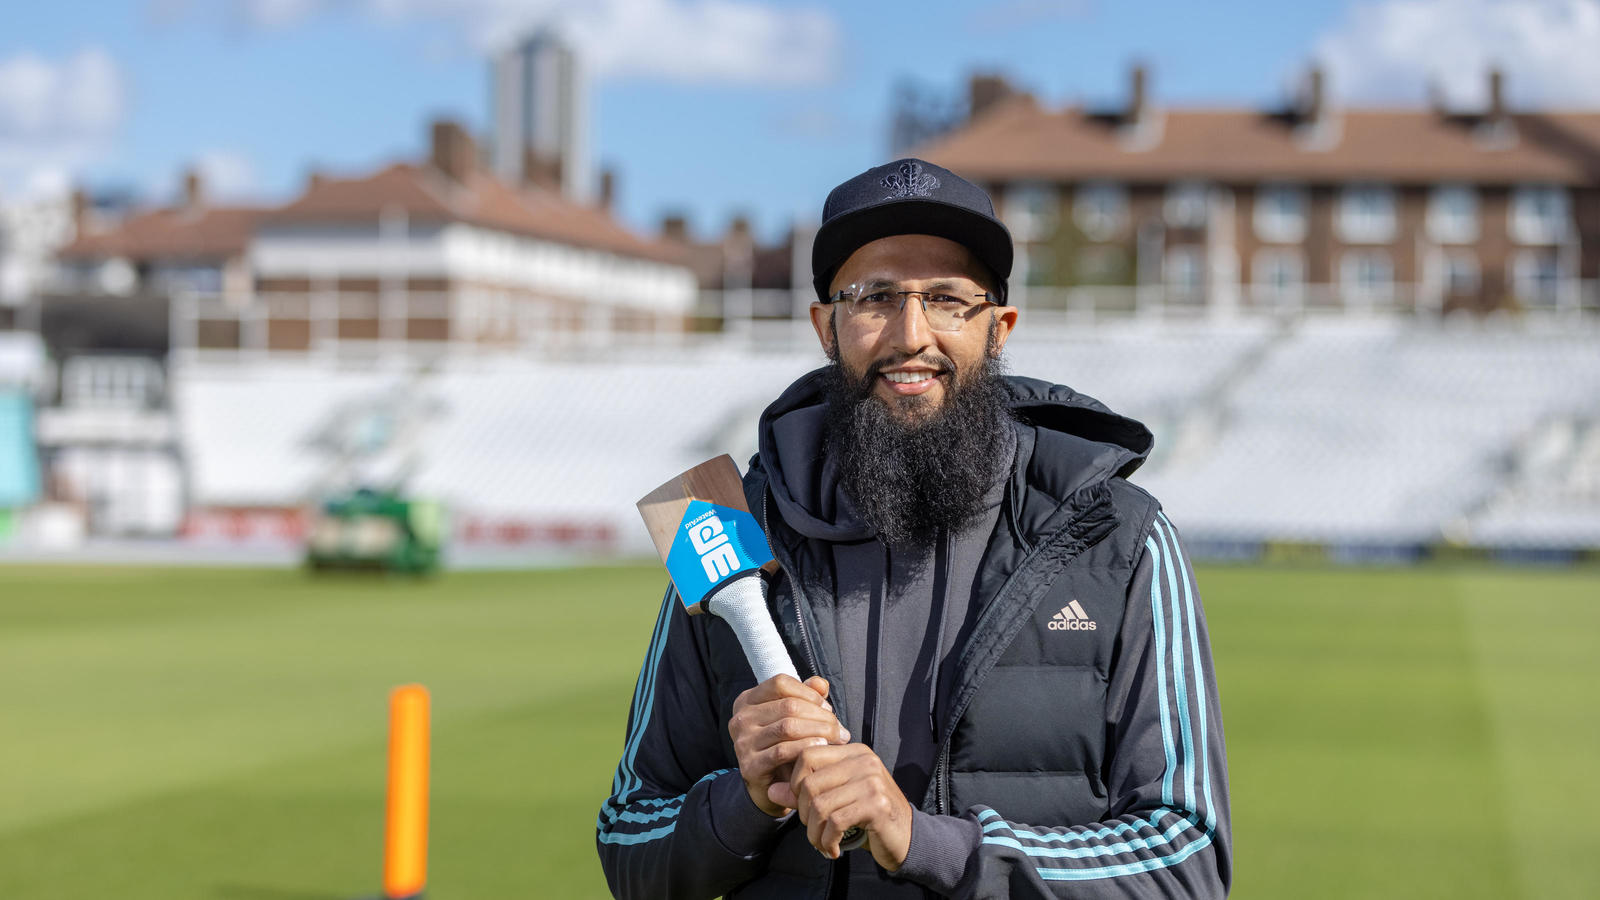 Hashim Amla with the bat as he takes part in Bring Water with Surrey County Cricket. Kia Oval, London. 24th September 2020